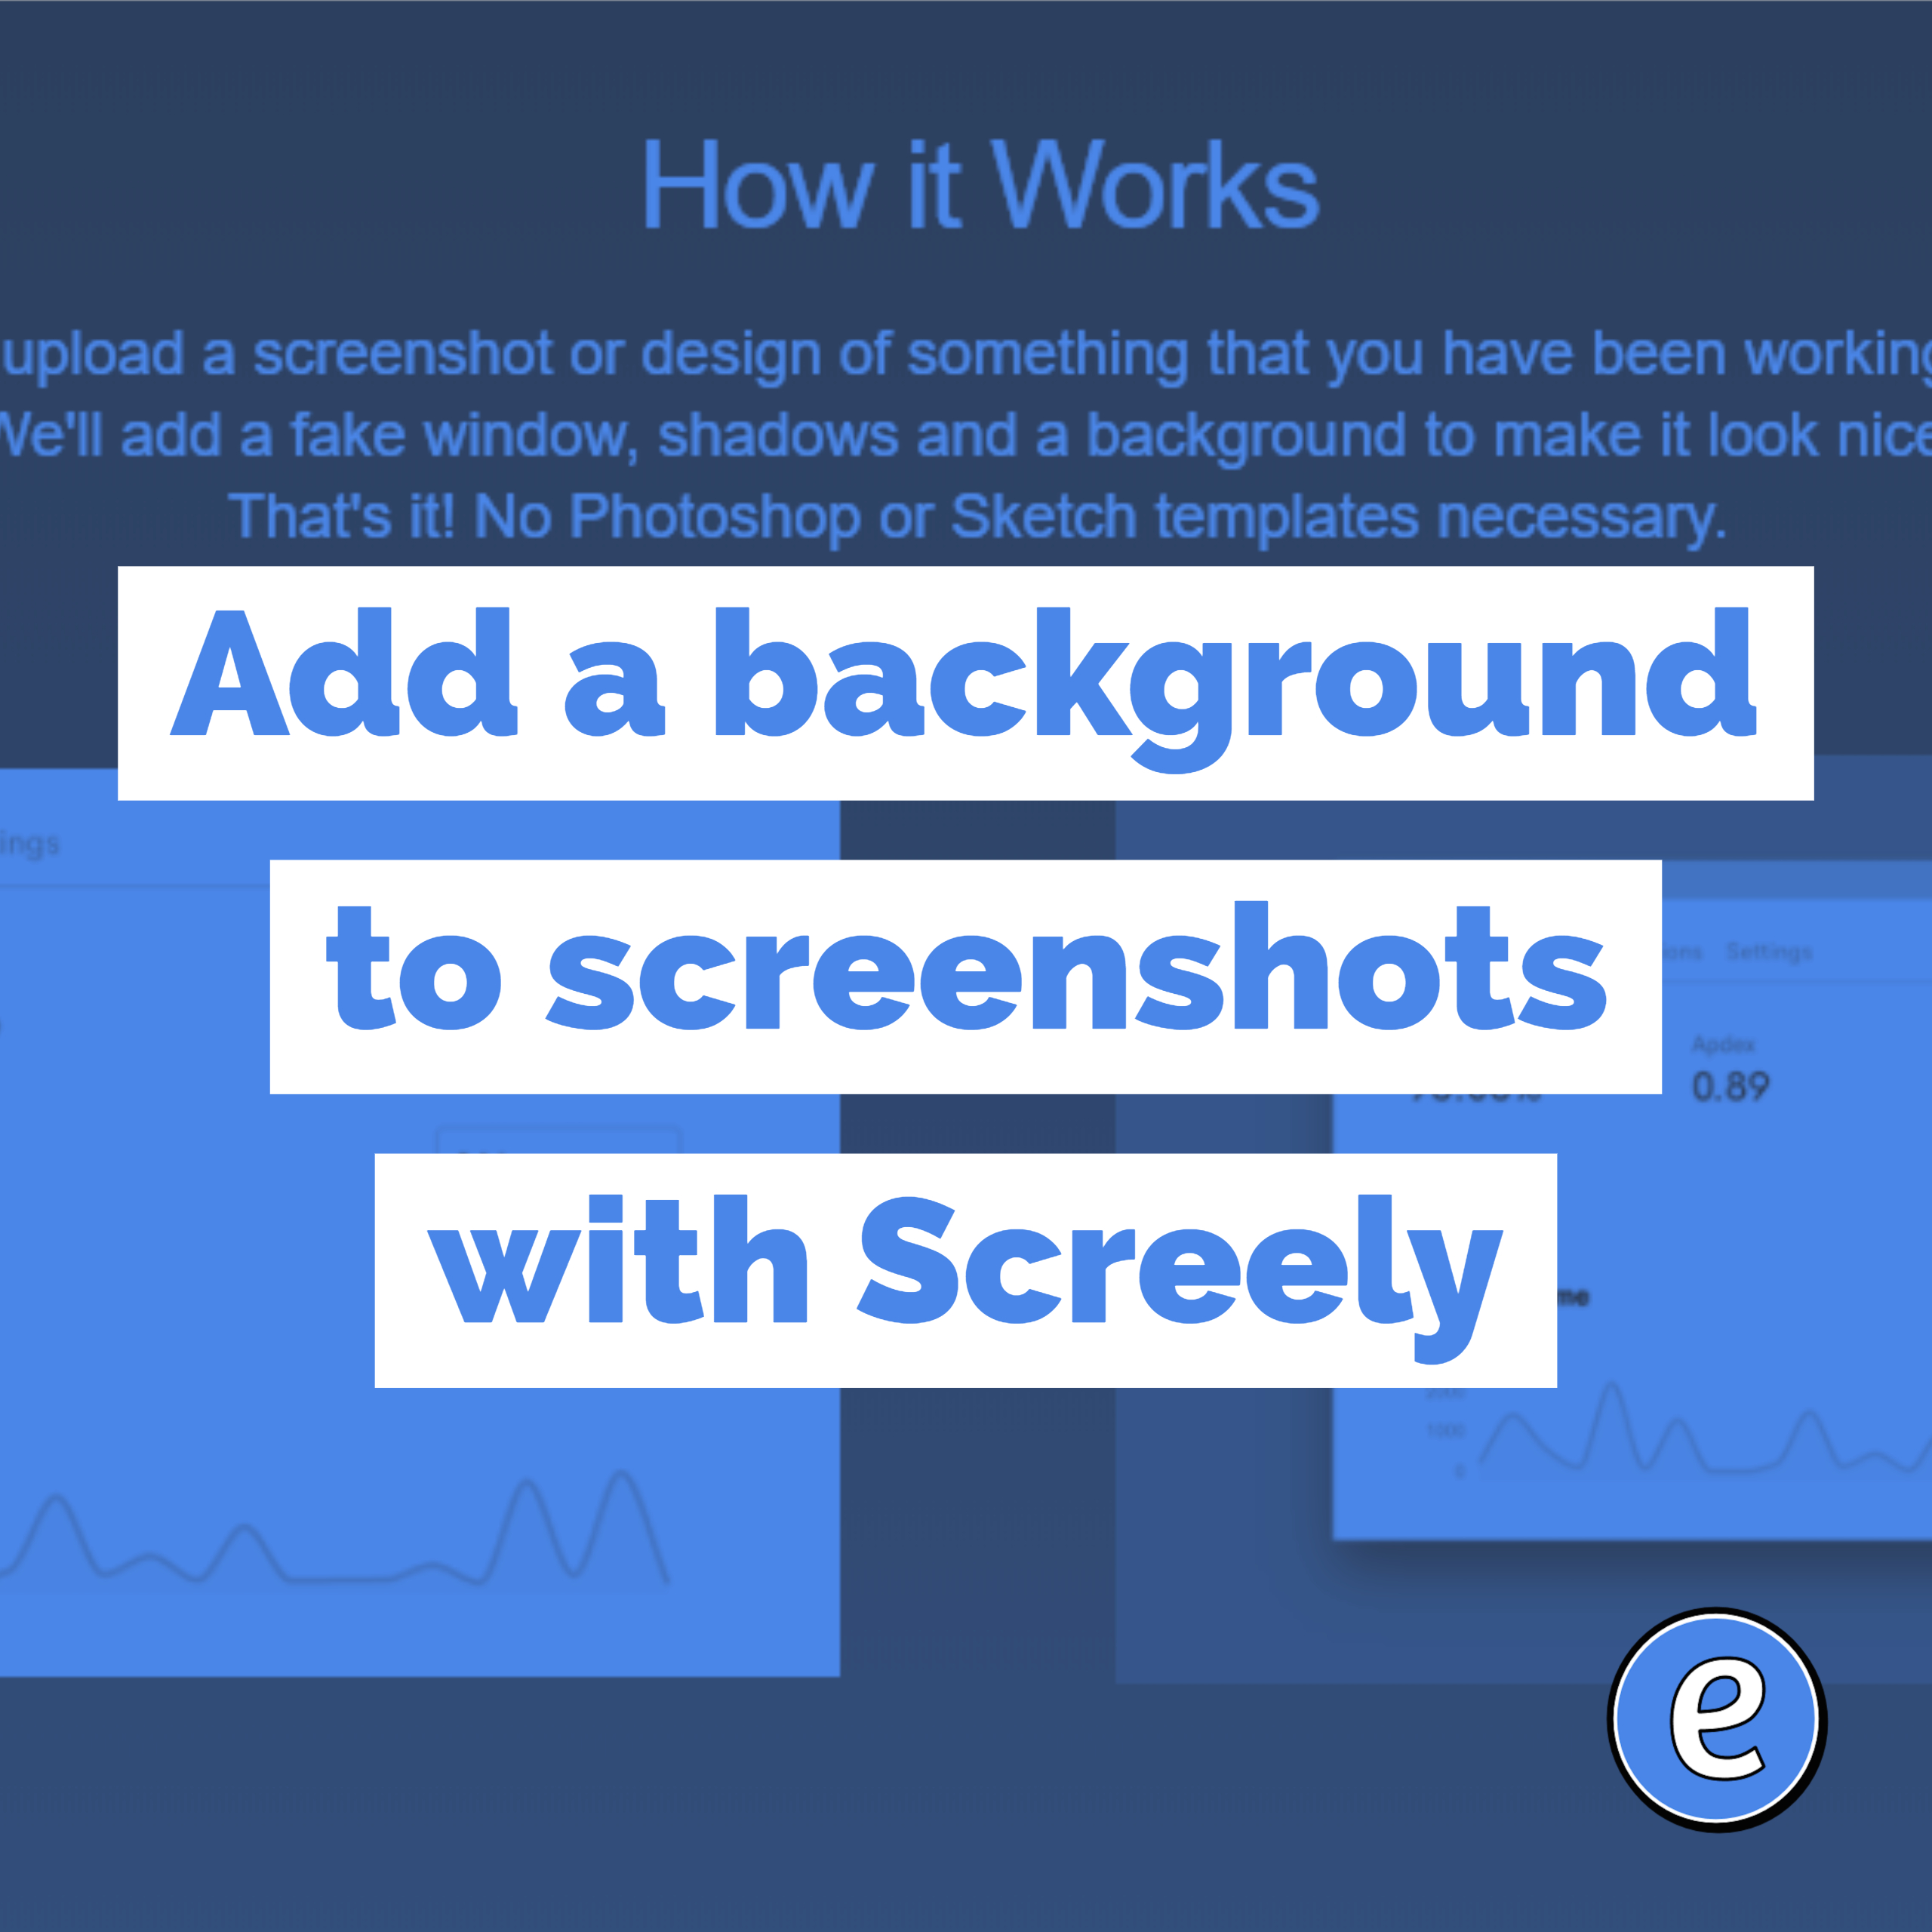 Add a background to screenshots with Screely